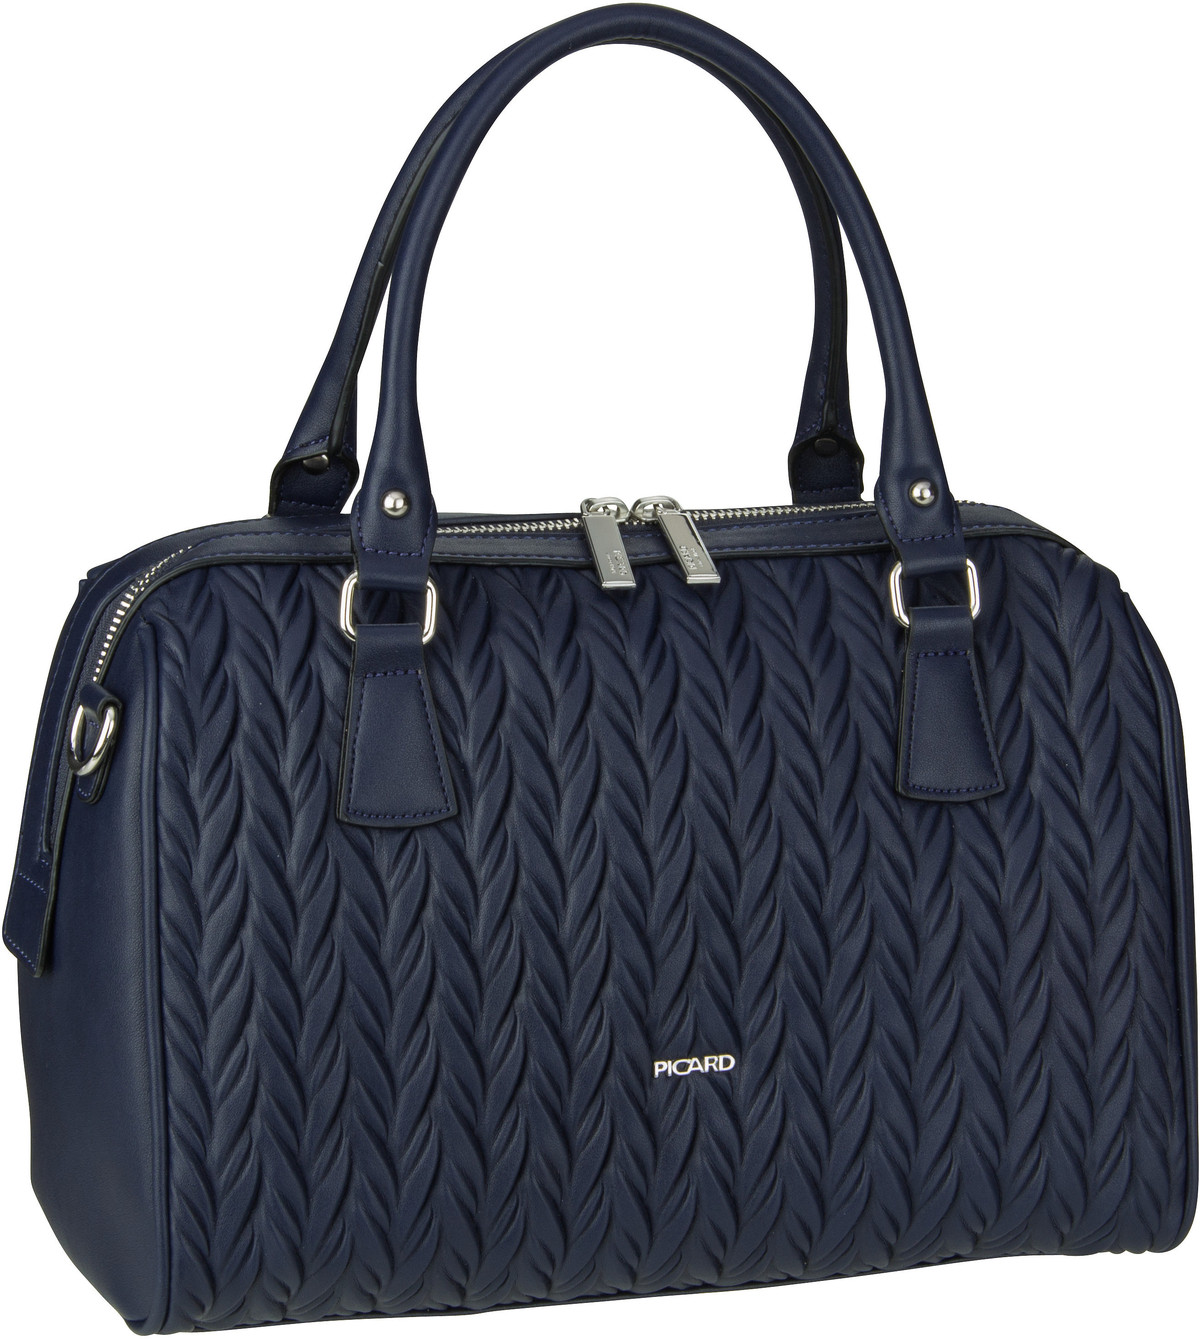 Handtasche Braid 2694 Darknight